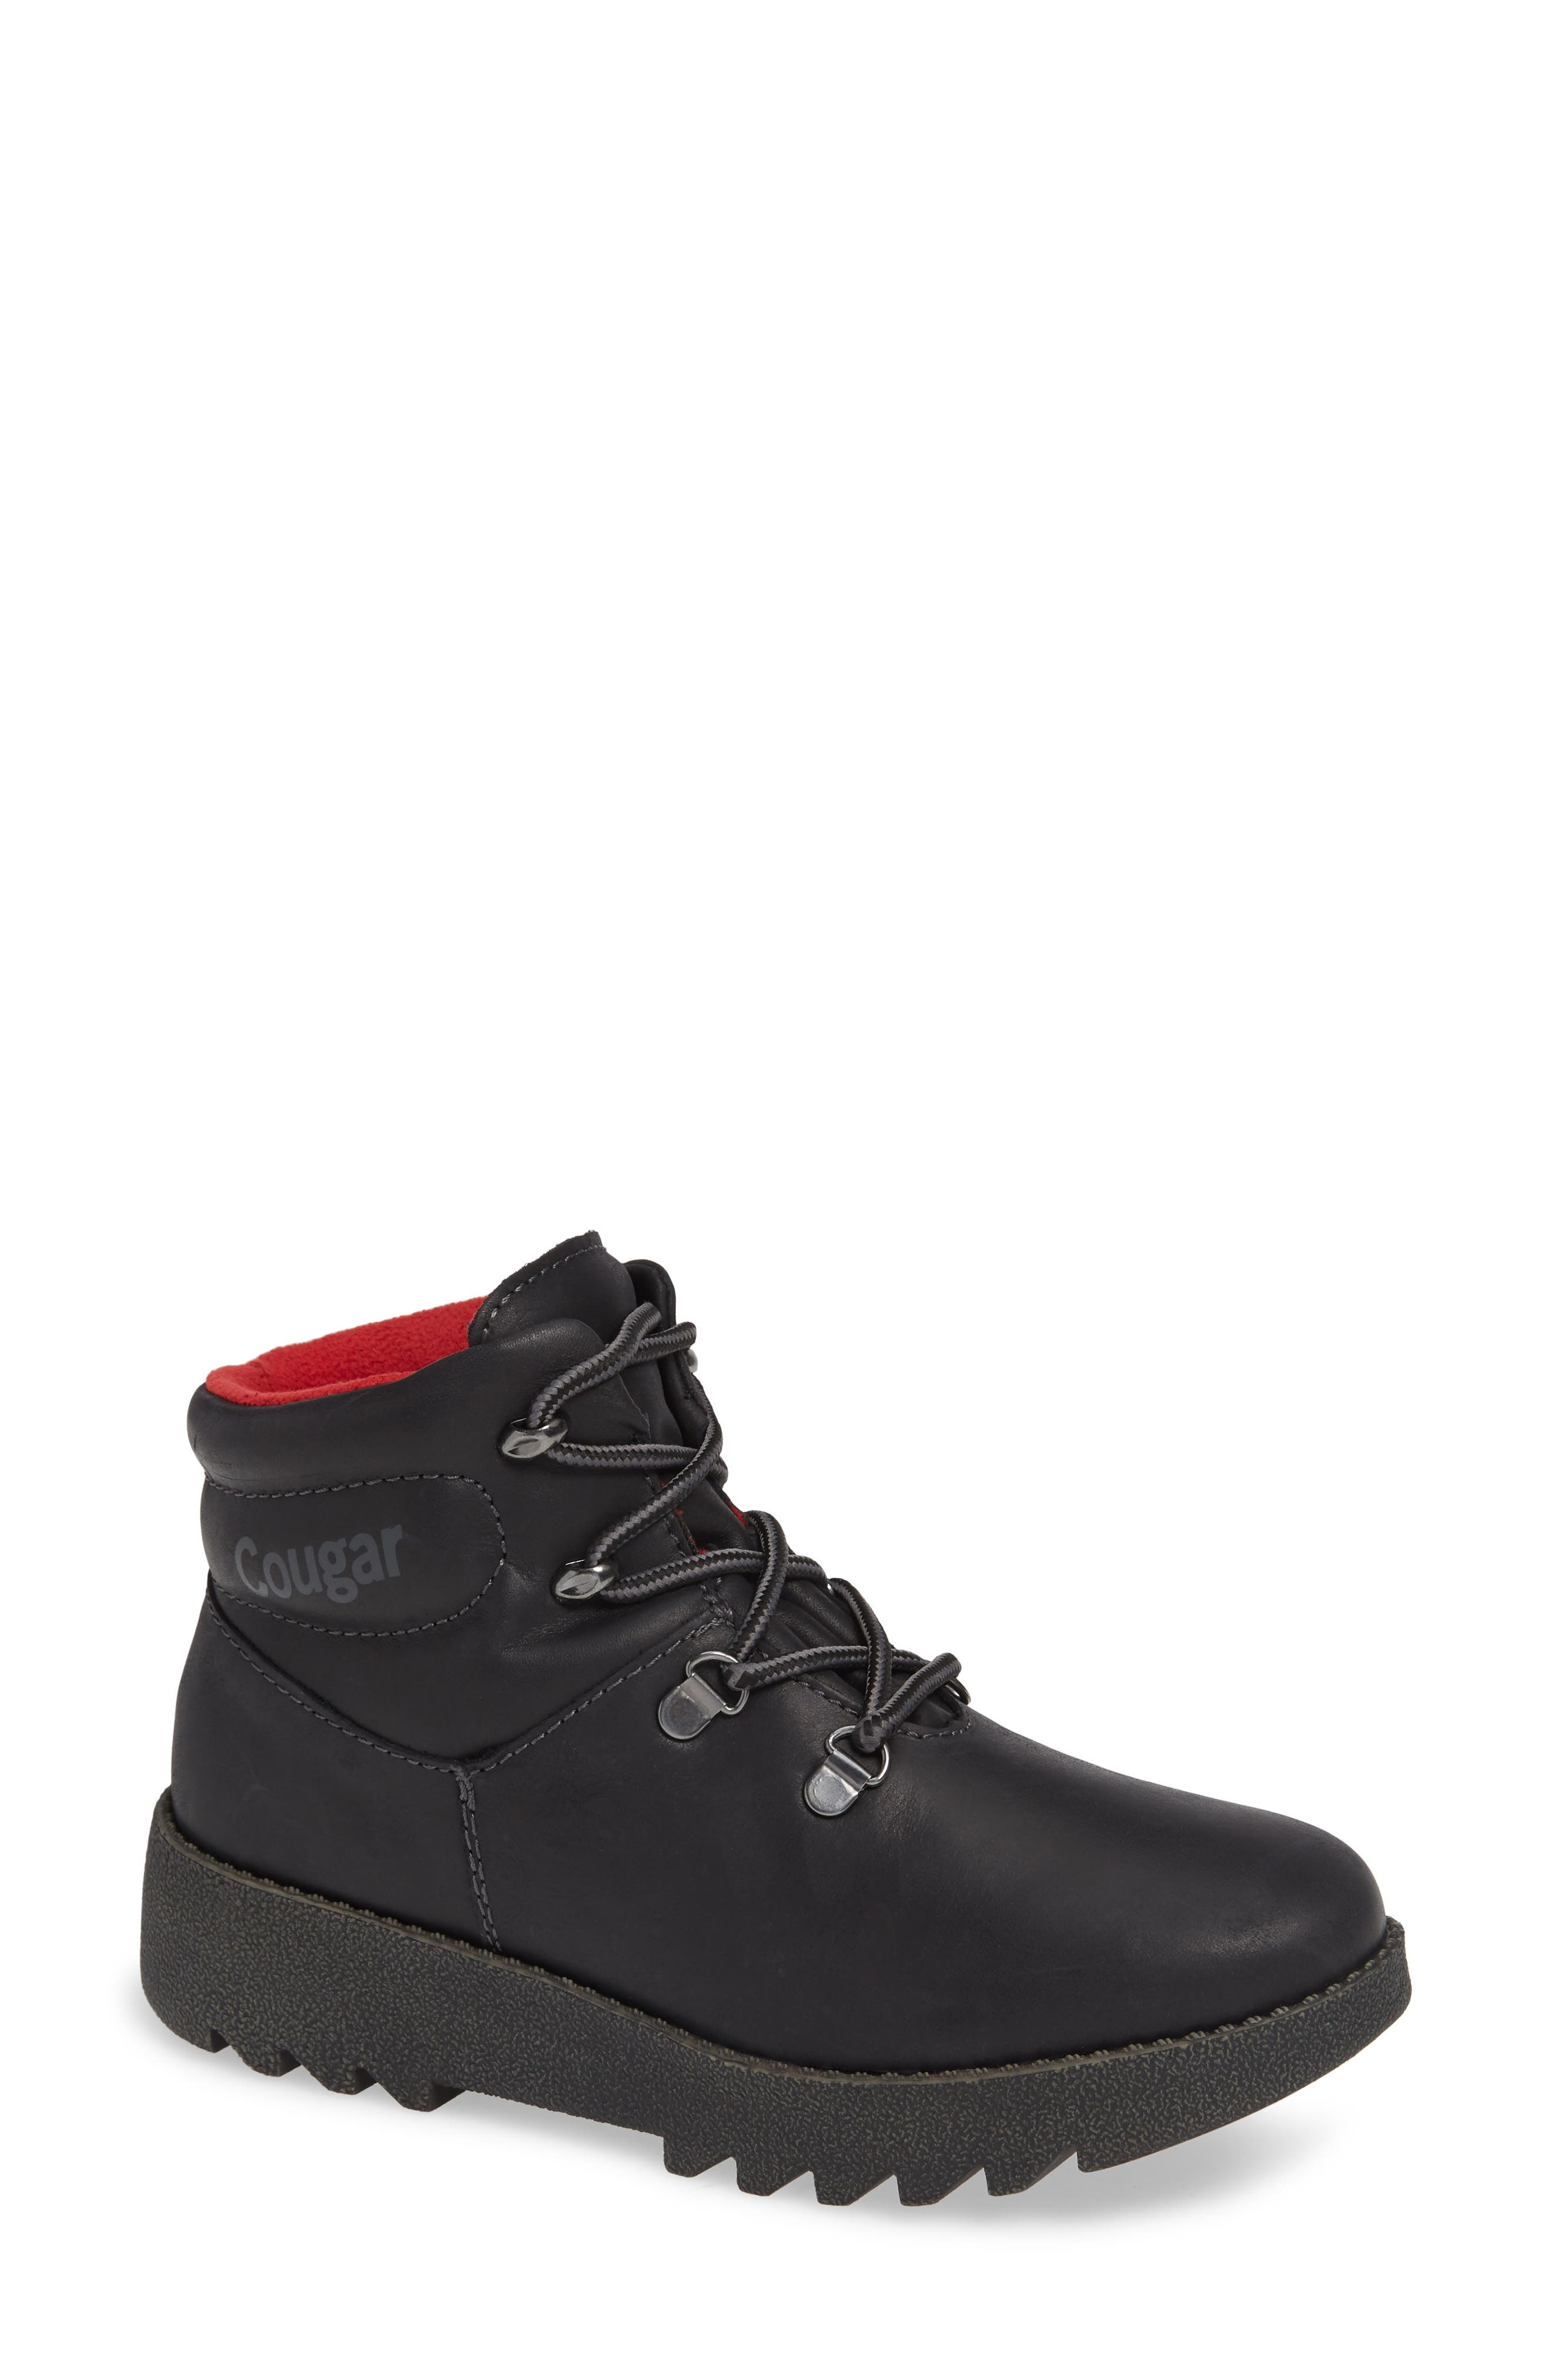 Cougar Paige Waterproof Insulated Bootie, Black